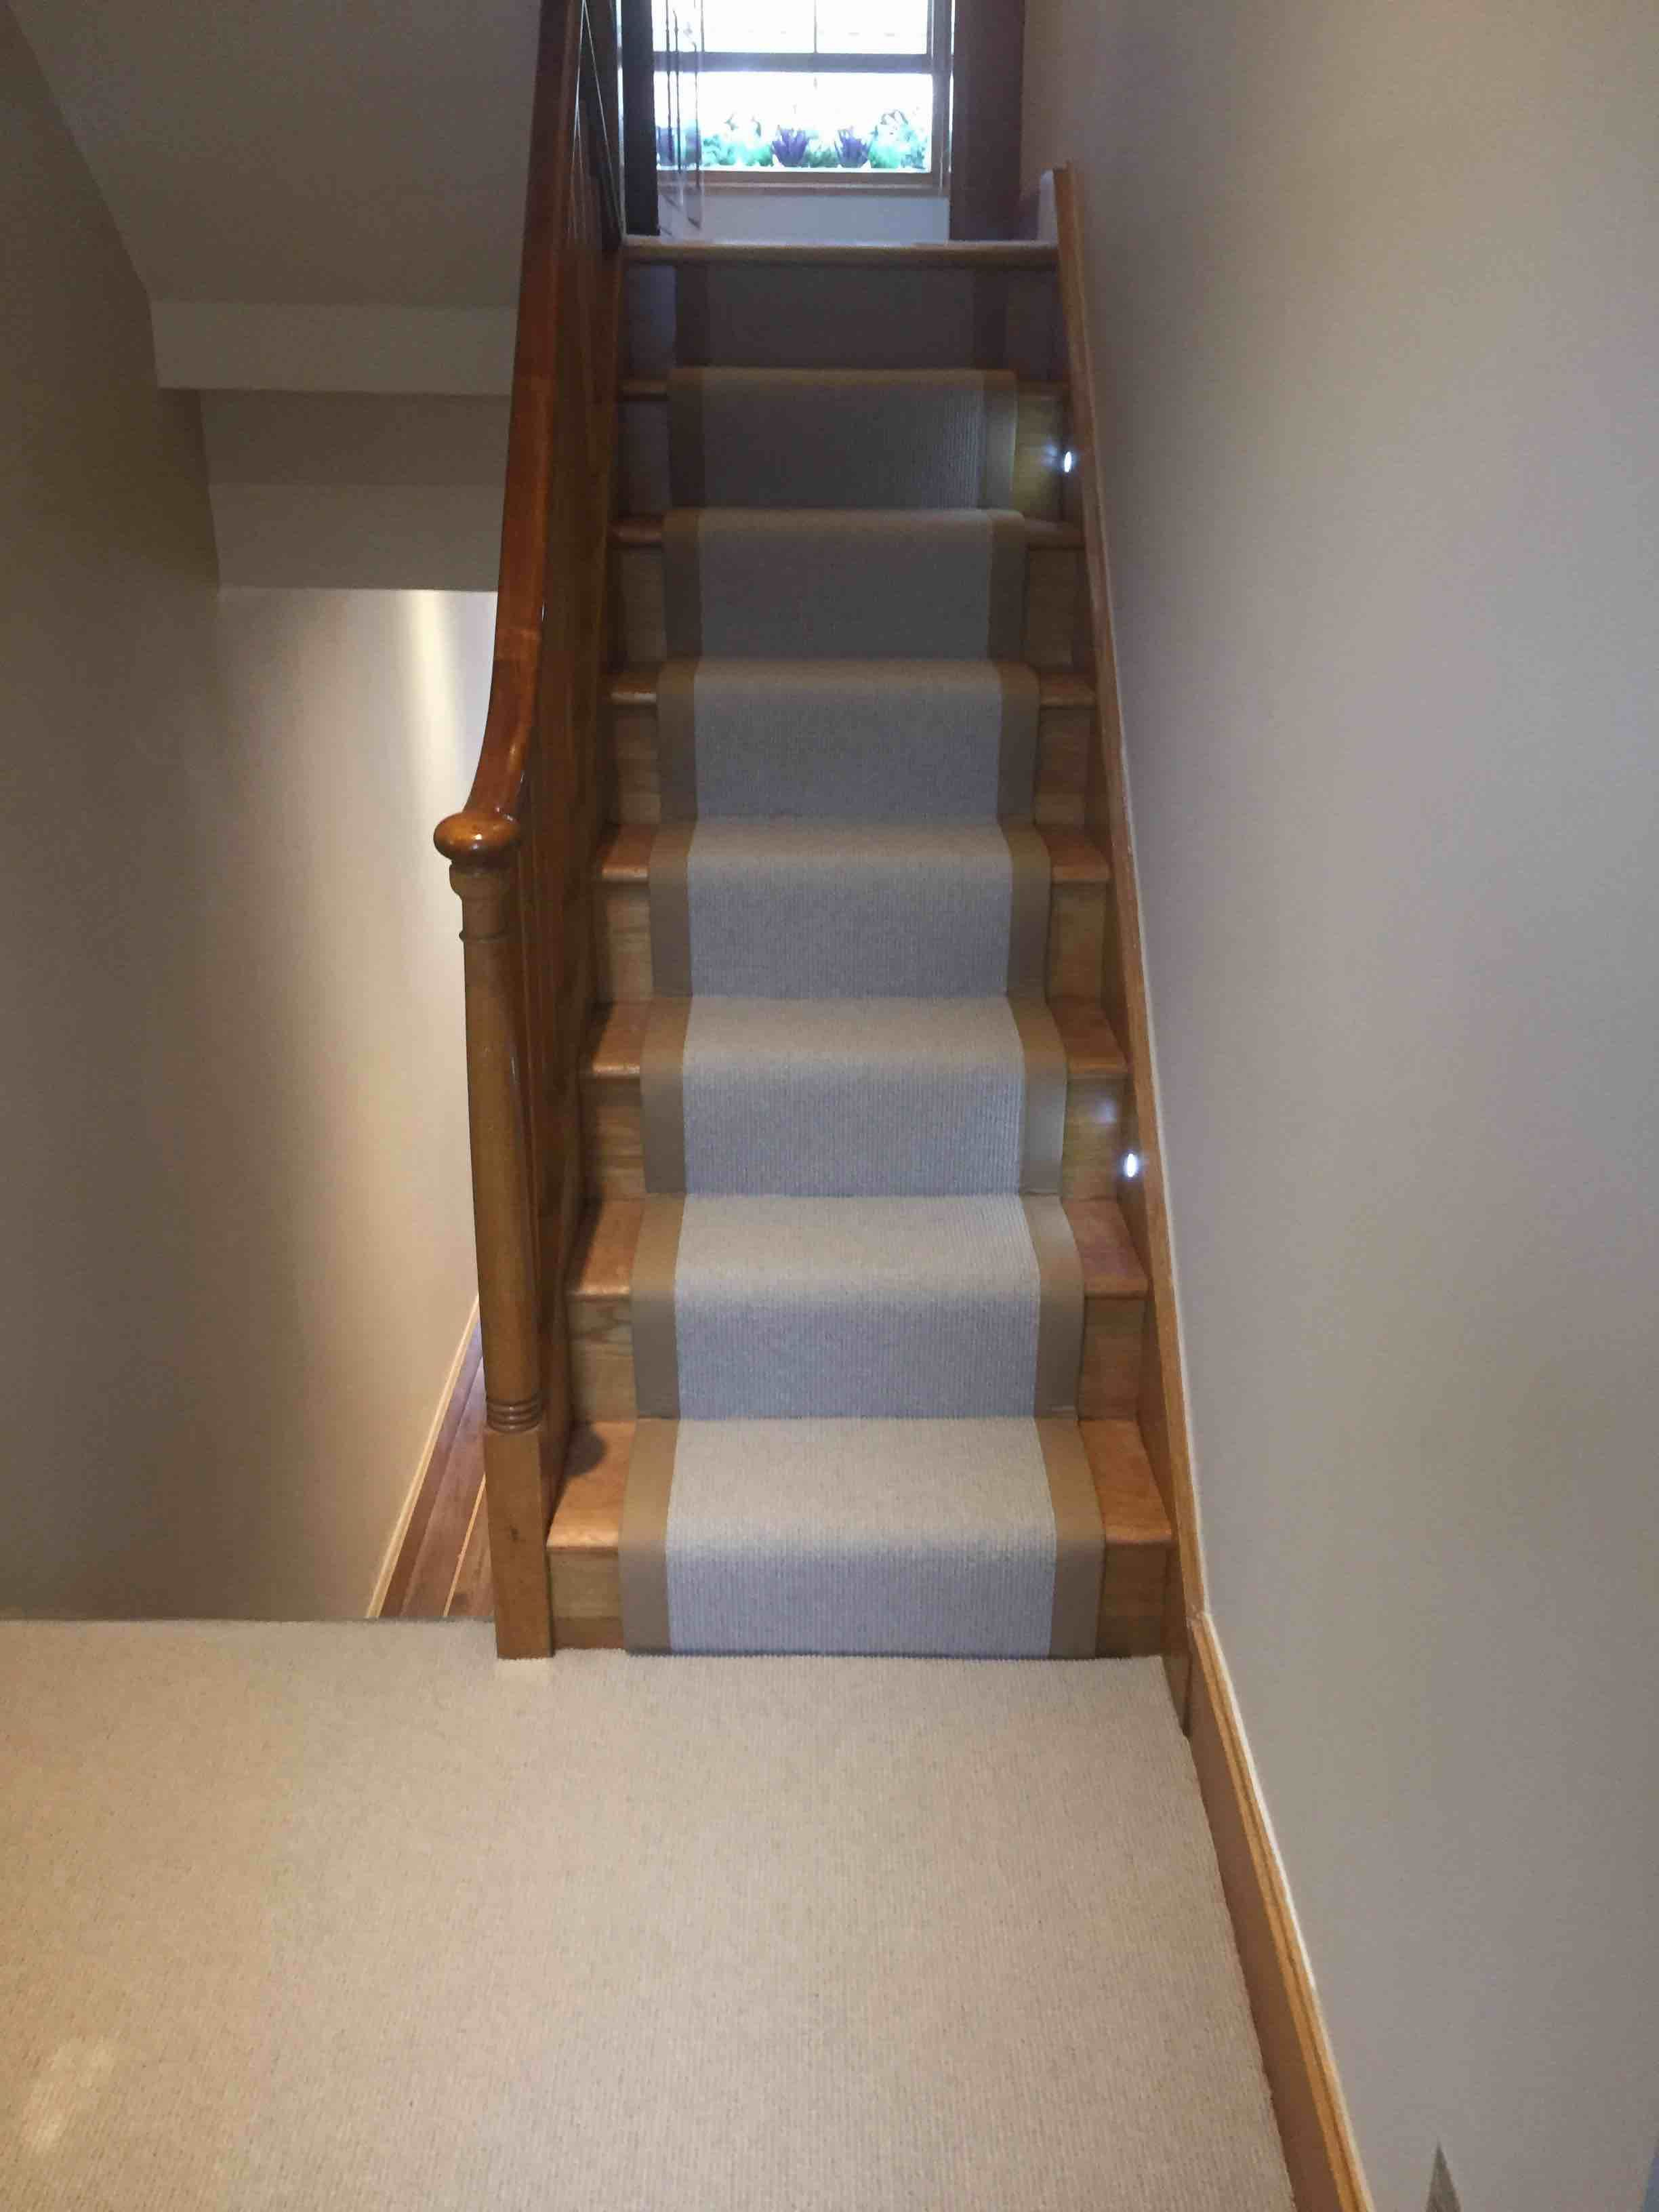 Checkout Recently Fitting Of Carpet In Town House And Runner On Stairs London Sw1w8jp Carpetrunner House Stair Runner Stair Runner Carpet House